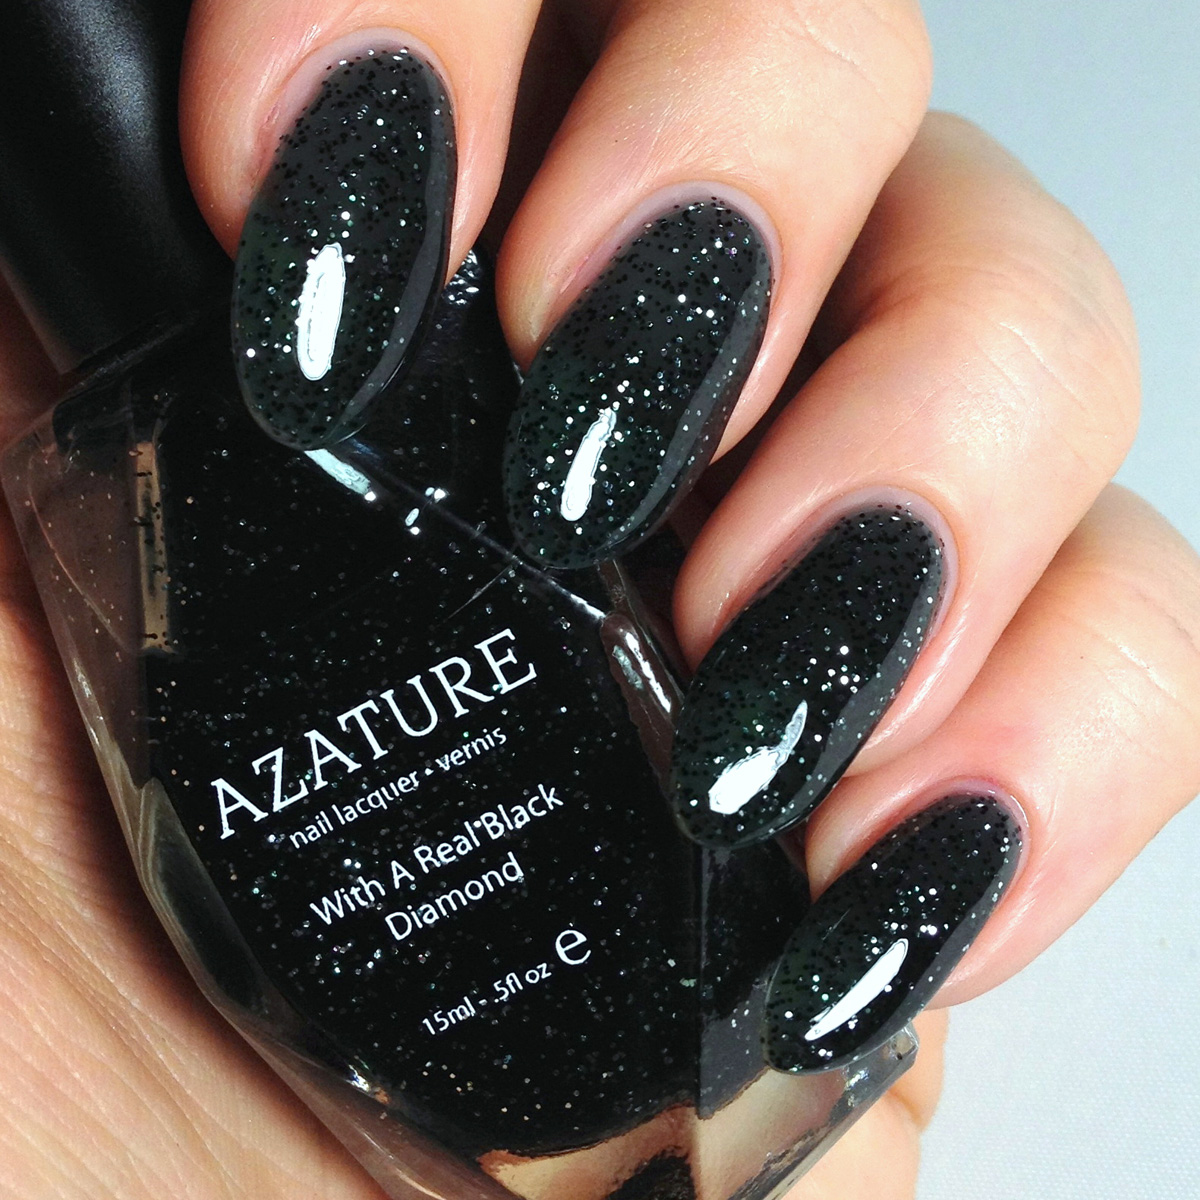 Azature Black | A Z A T U R E